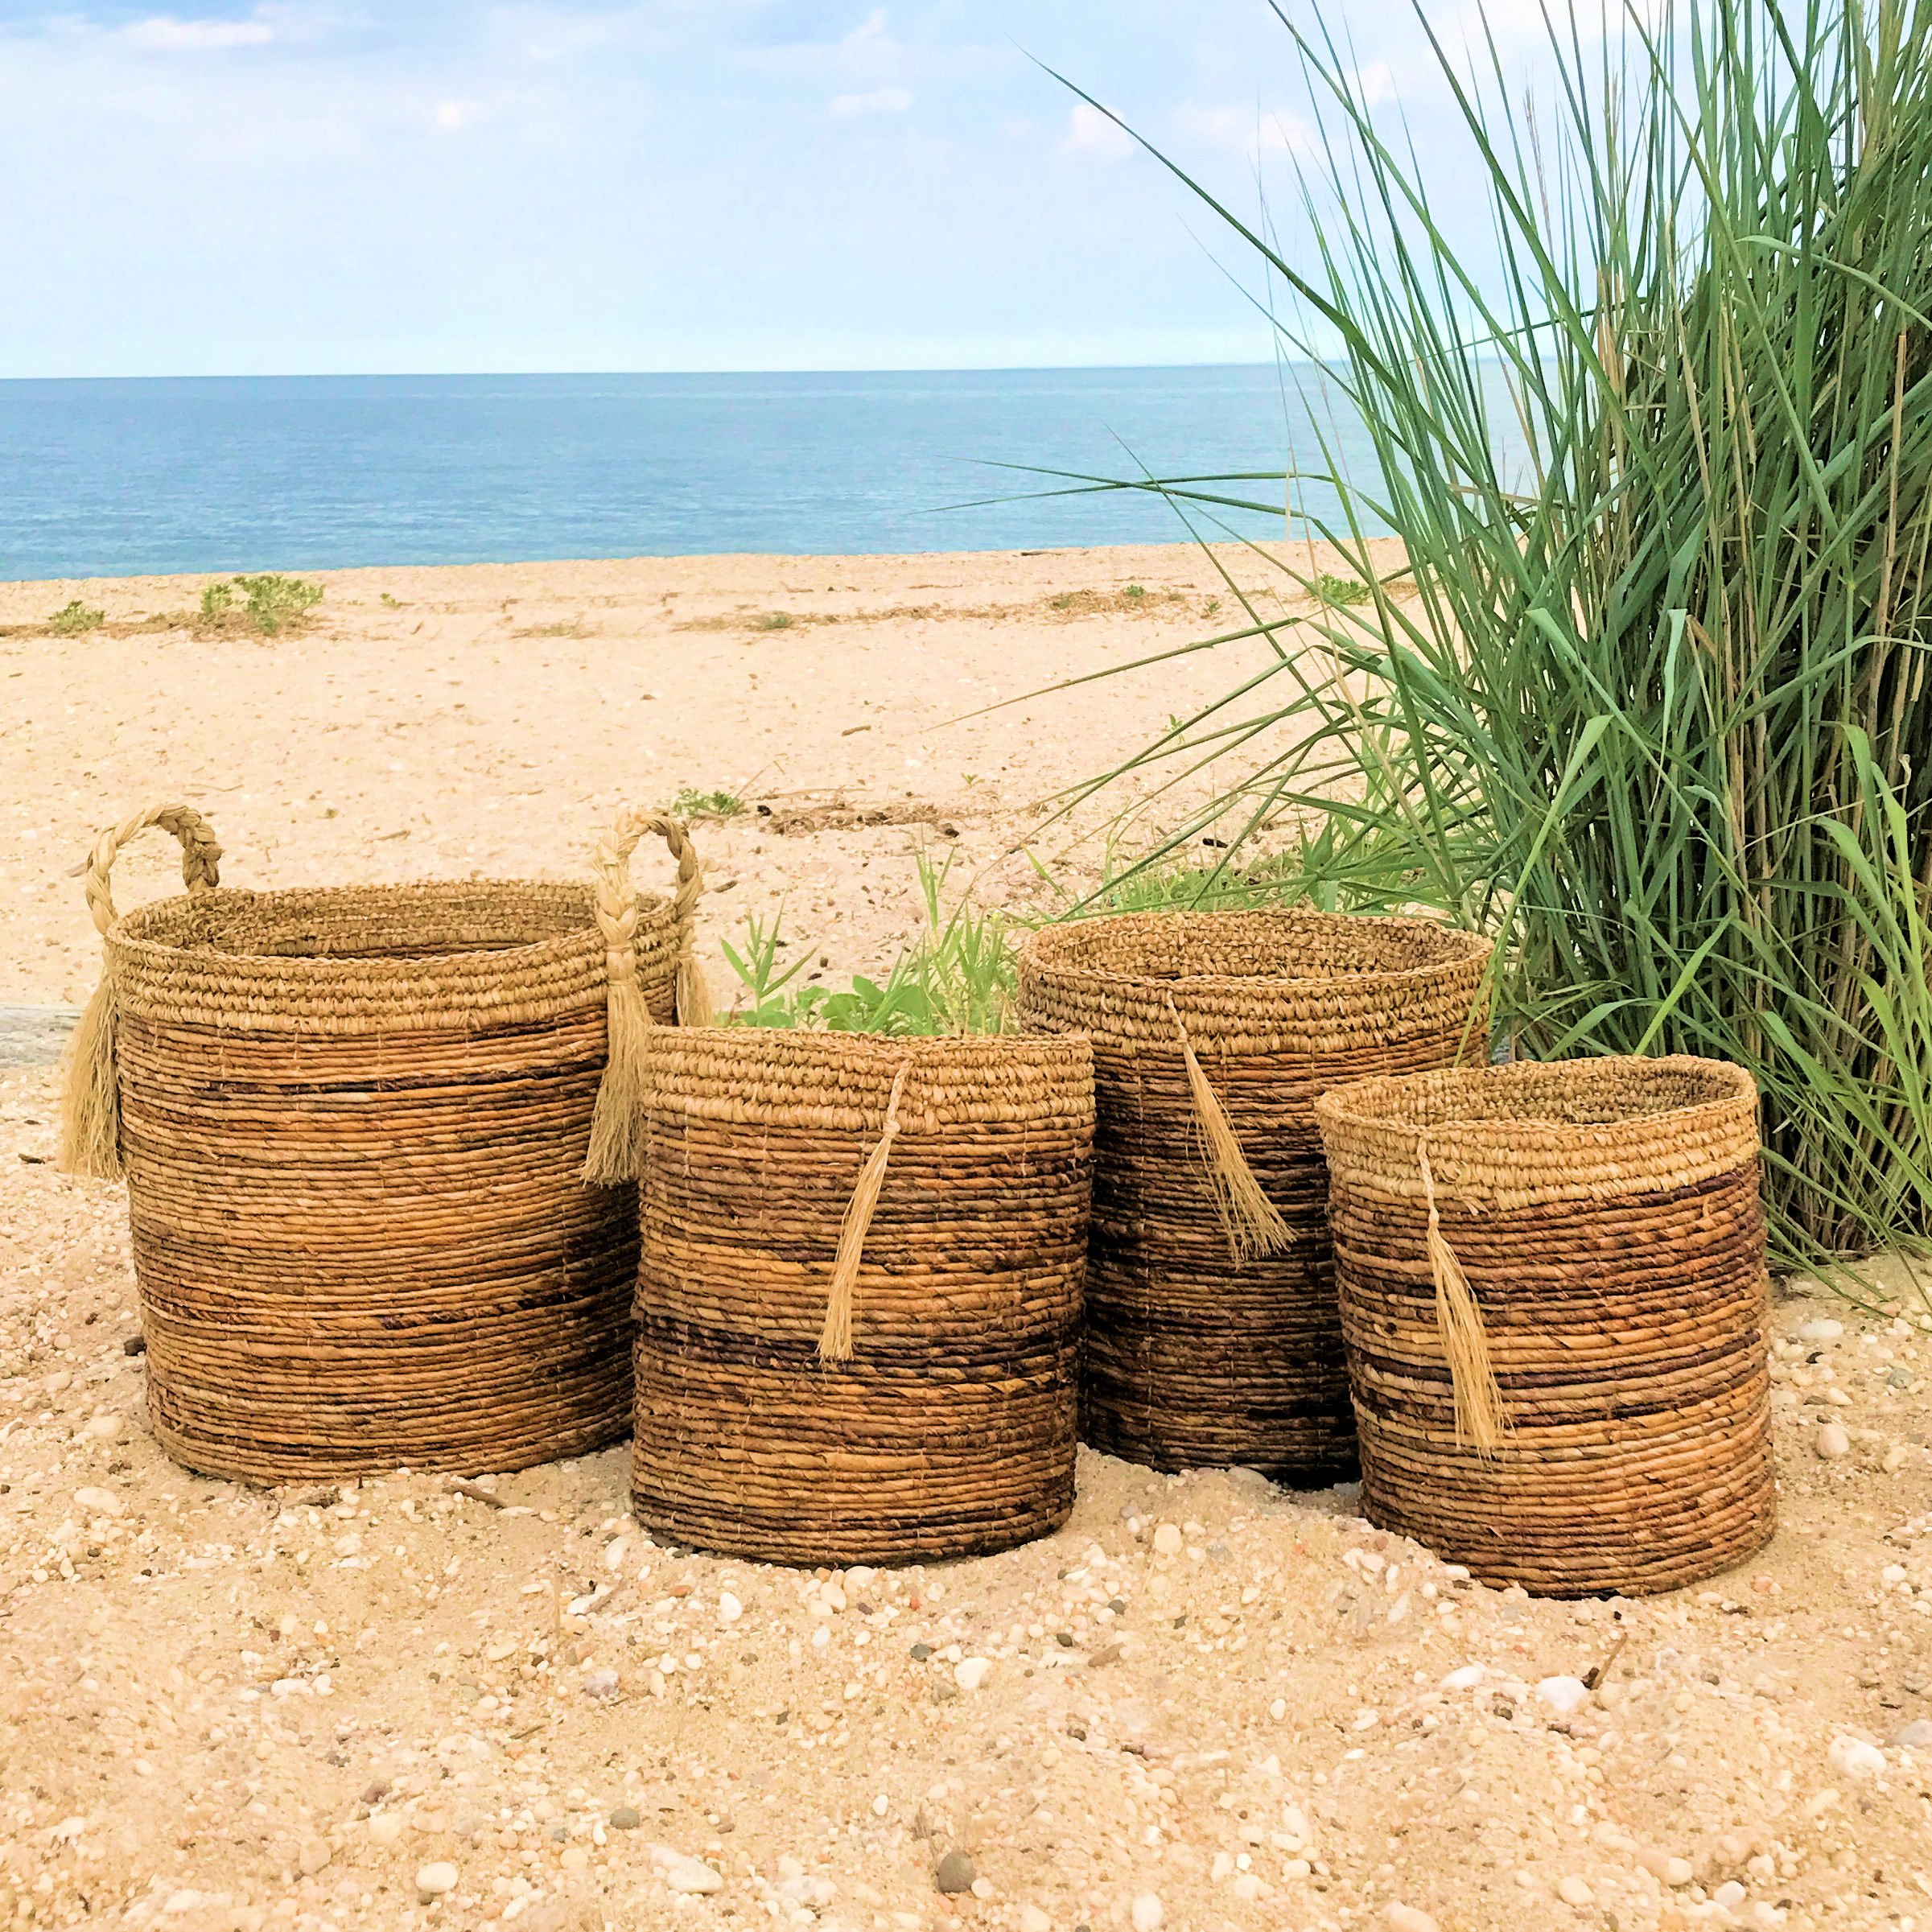 The Boho Beach House Tassel Baskets, Set of 4, Relaxed Coastal Style, Woven Banana Leaf and Sisal 3 Barrel and 1 Oversized Top-handled, (Various Sizes) By Whole House Worlds